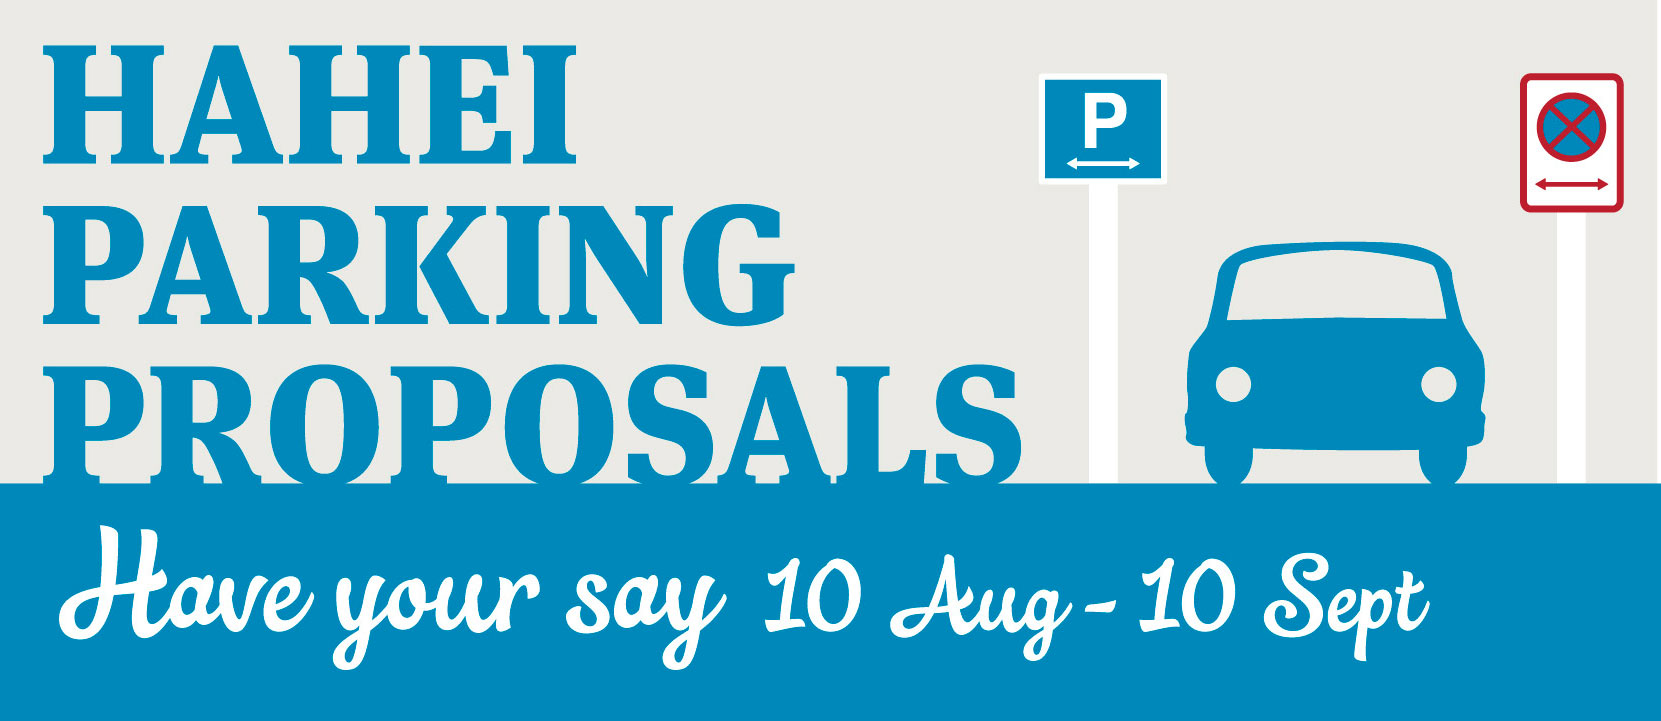 Hahei parking consultation banner